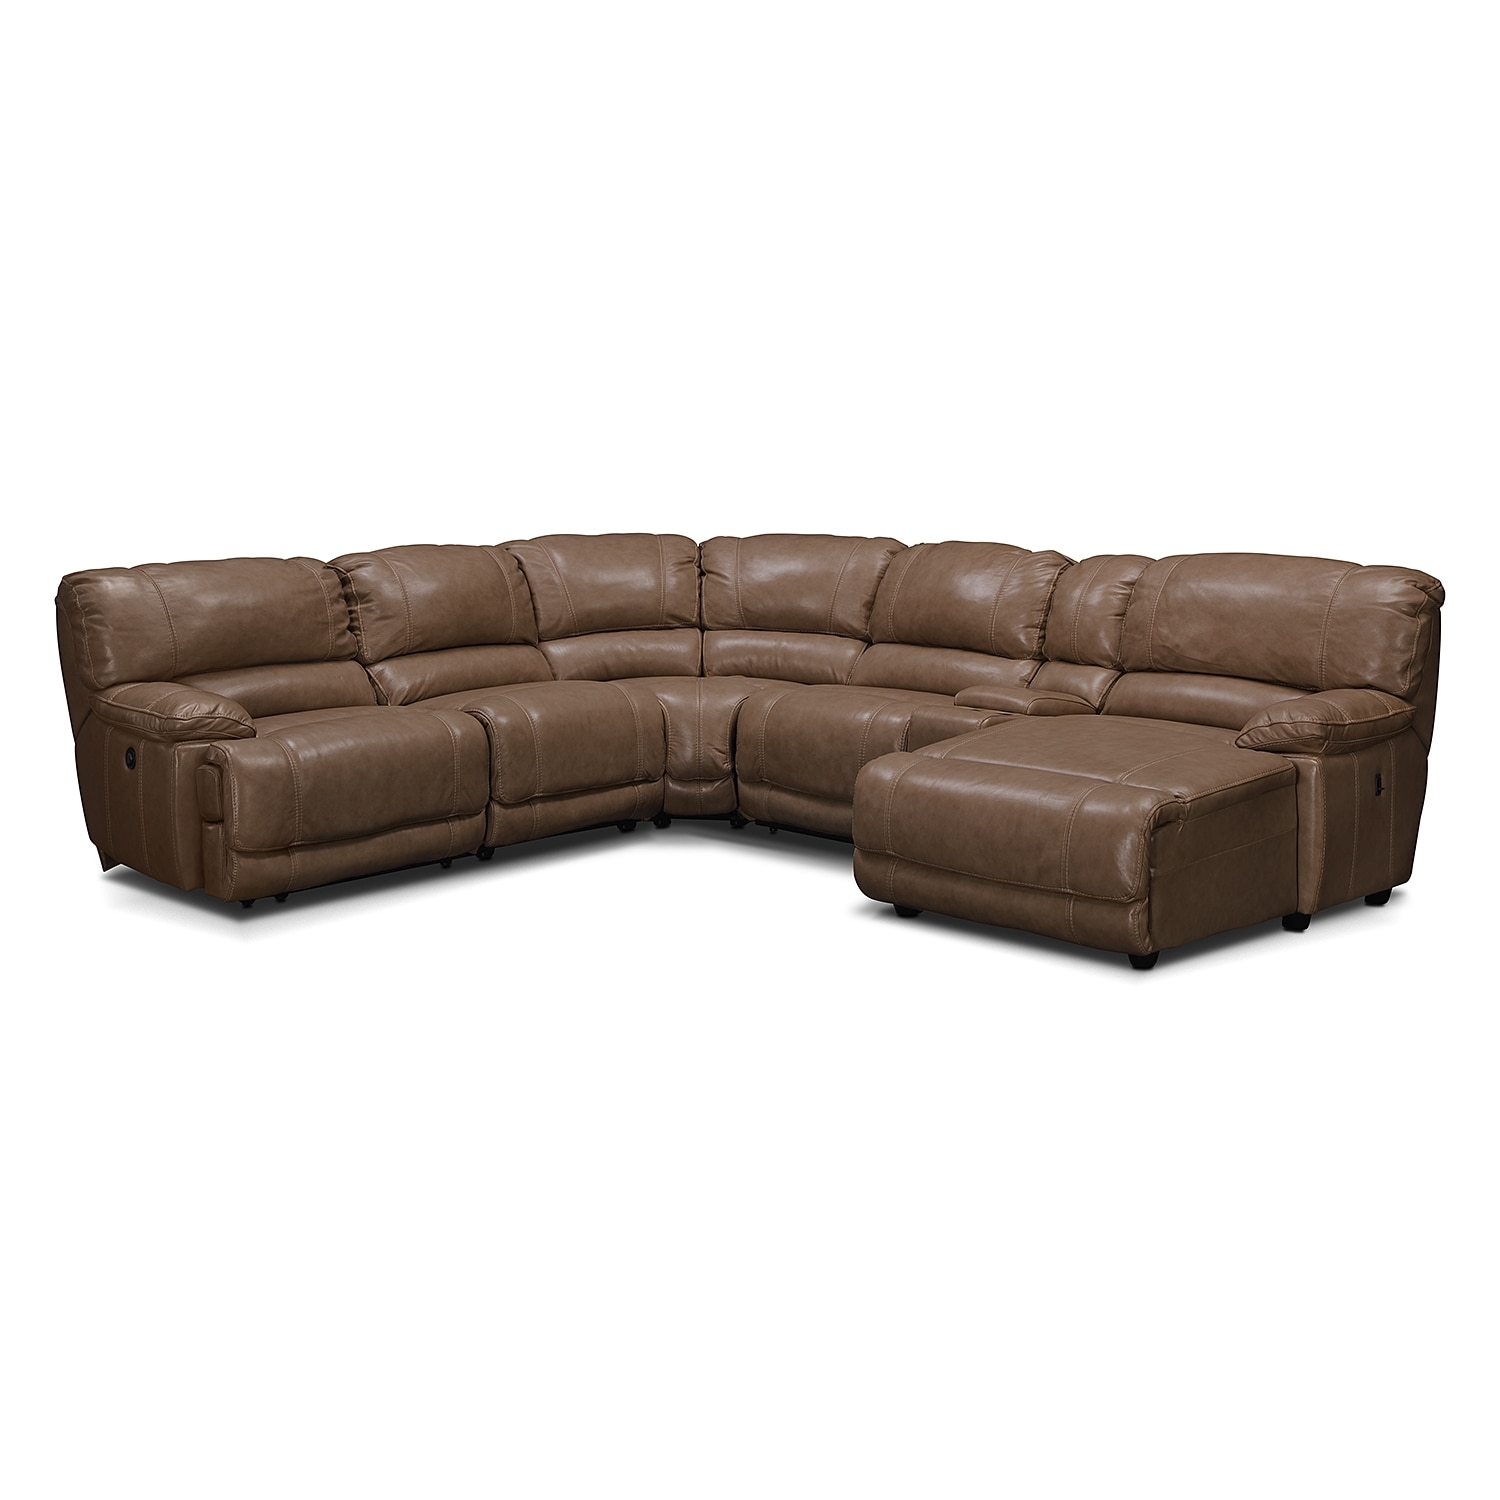 Living Room Furniture - Clinton Taupe 6 Pc. Power Reclining Sectional